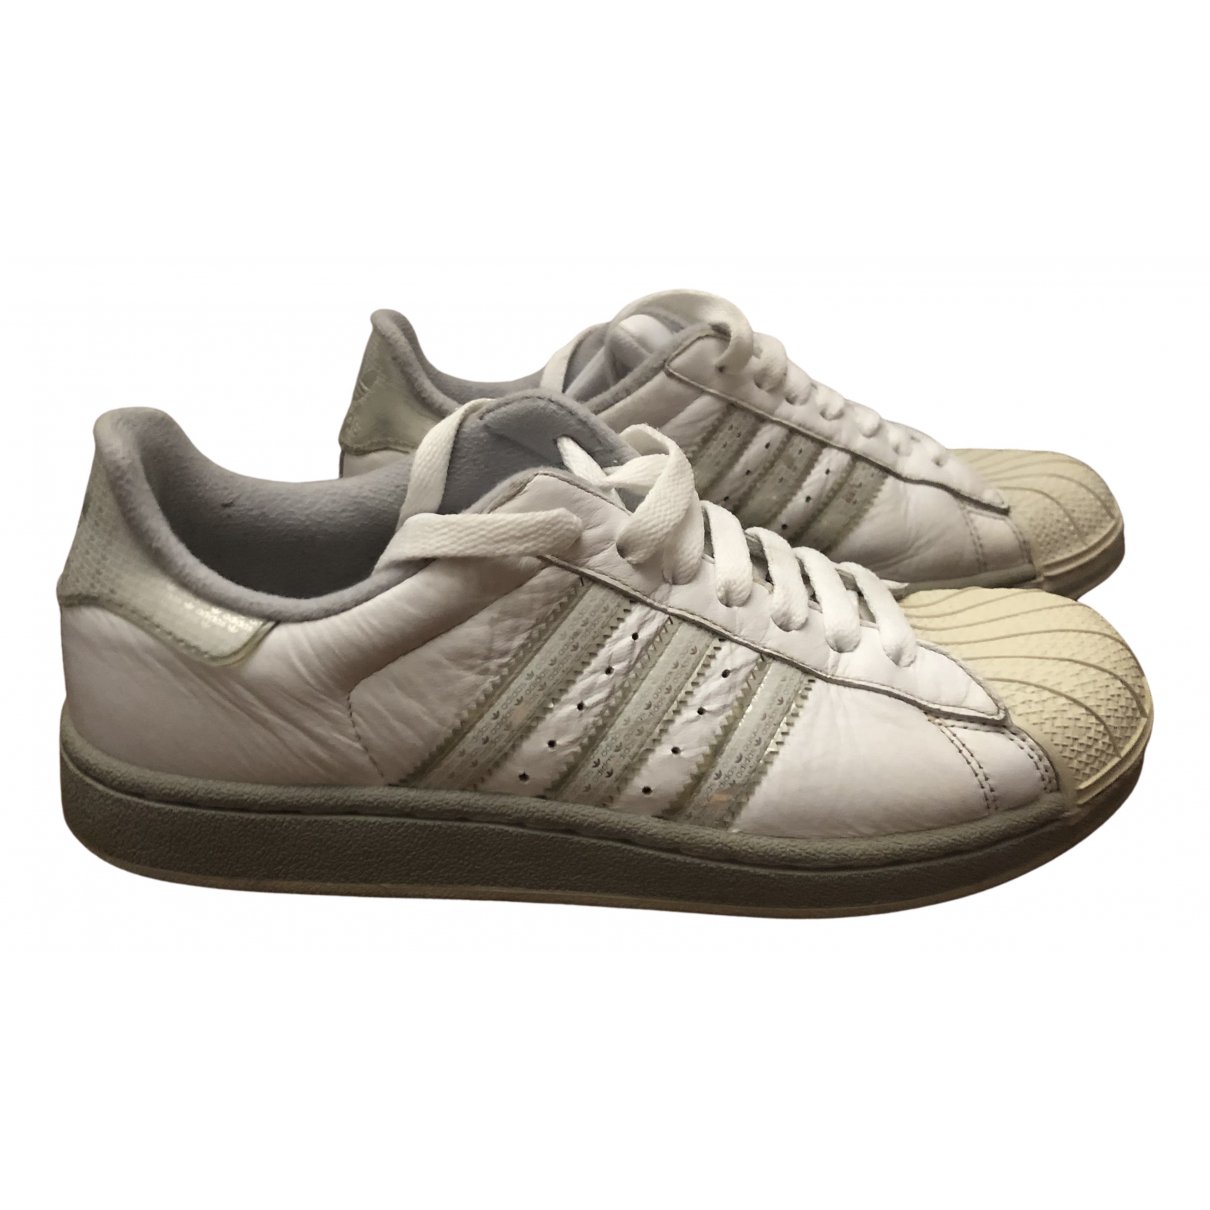 Adidas Superstar White Leather Trainers for Women 5 UK